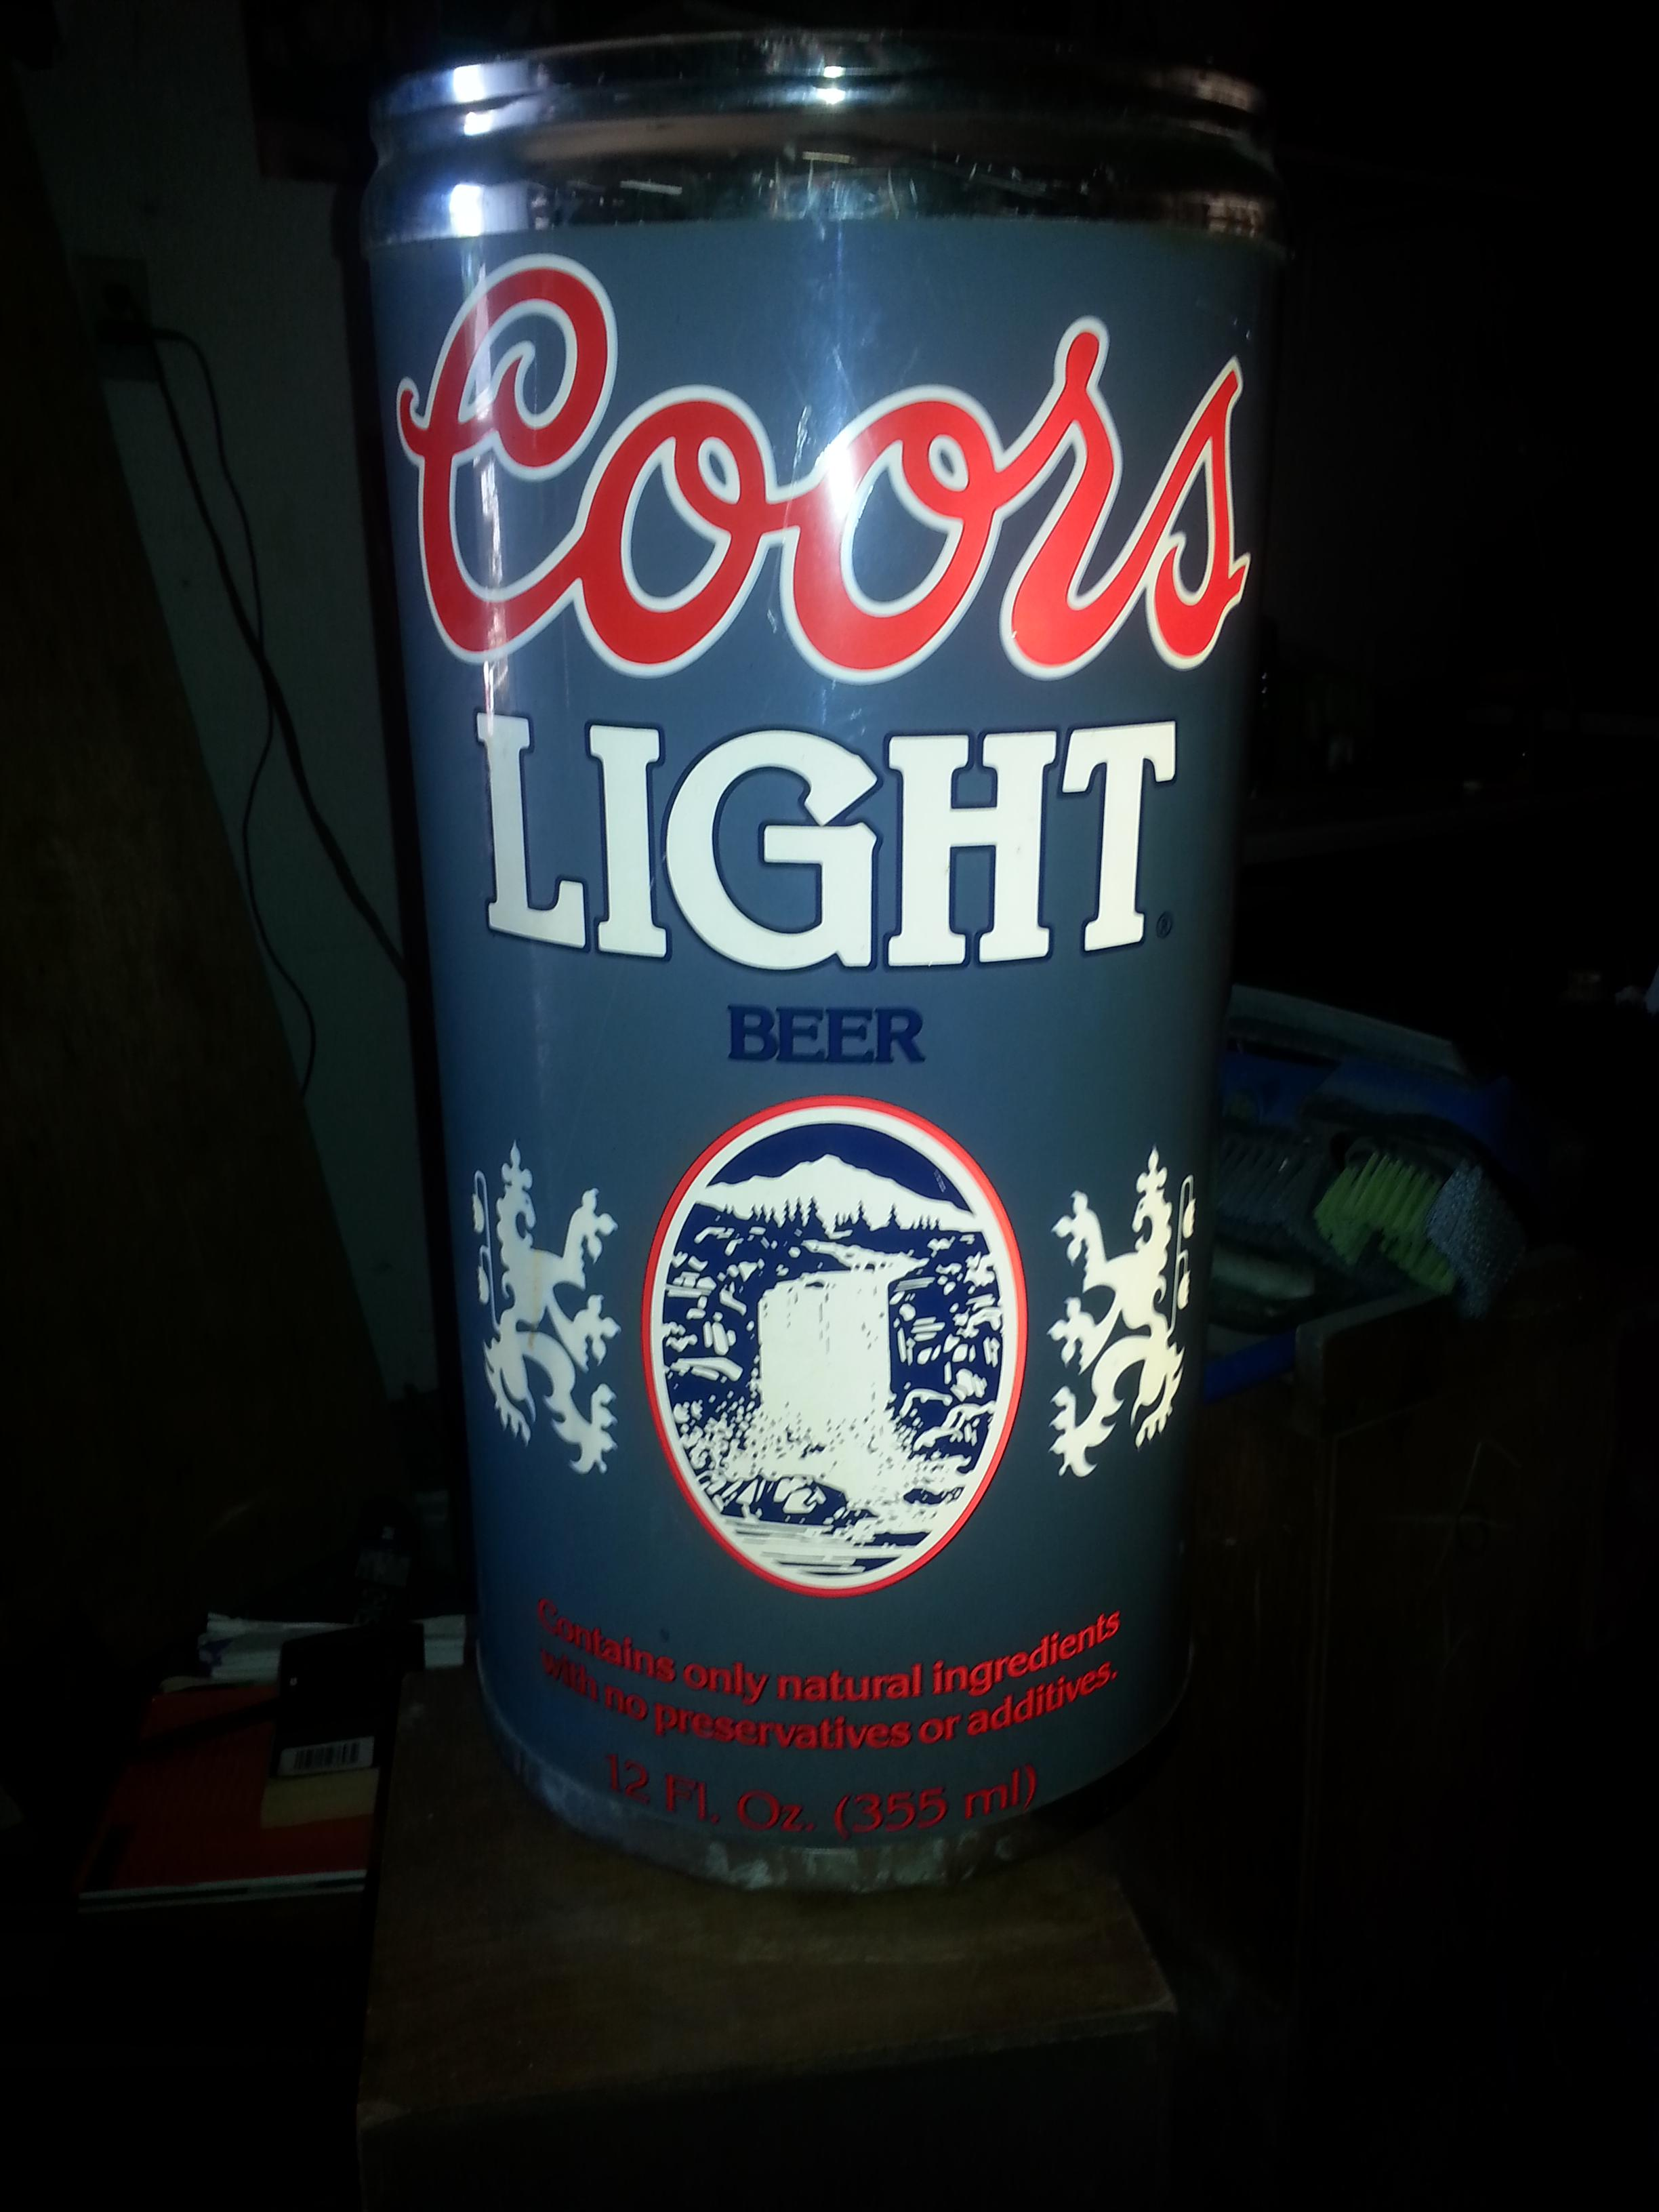 coors light chair yellow accent target vintage electric bar sign antique appraisal